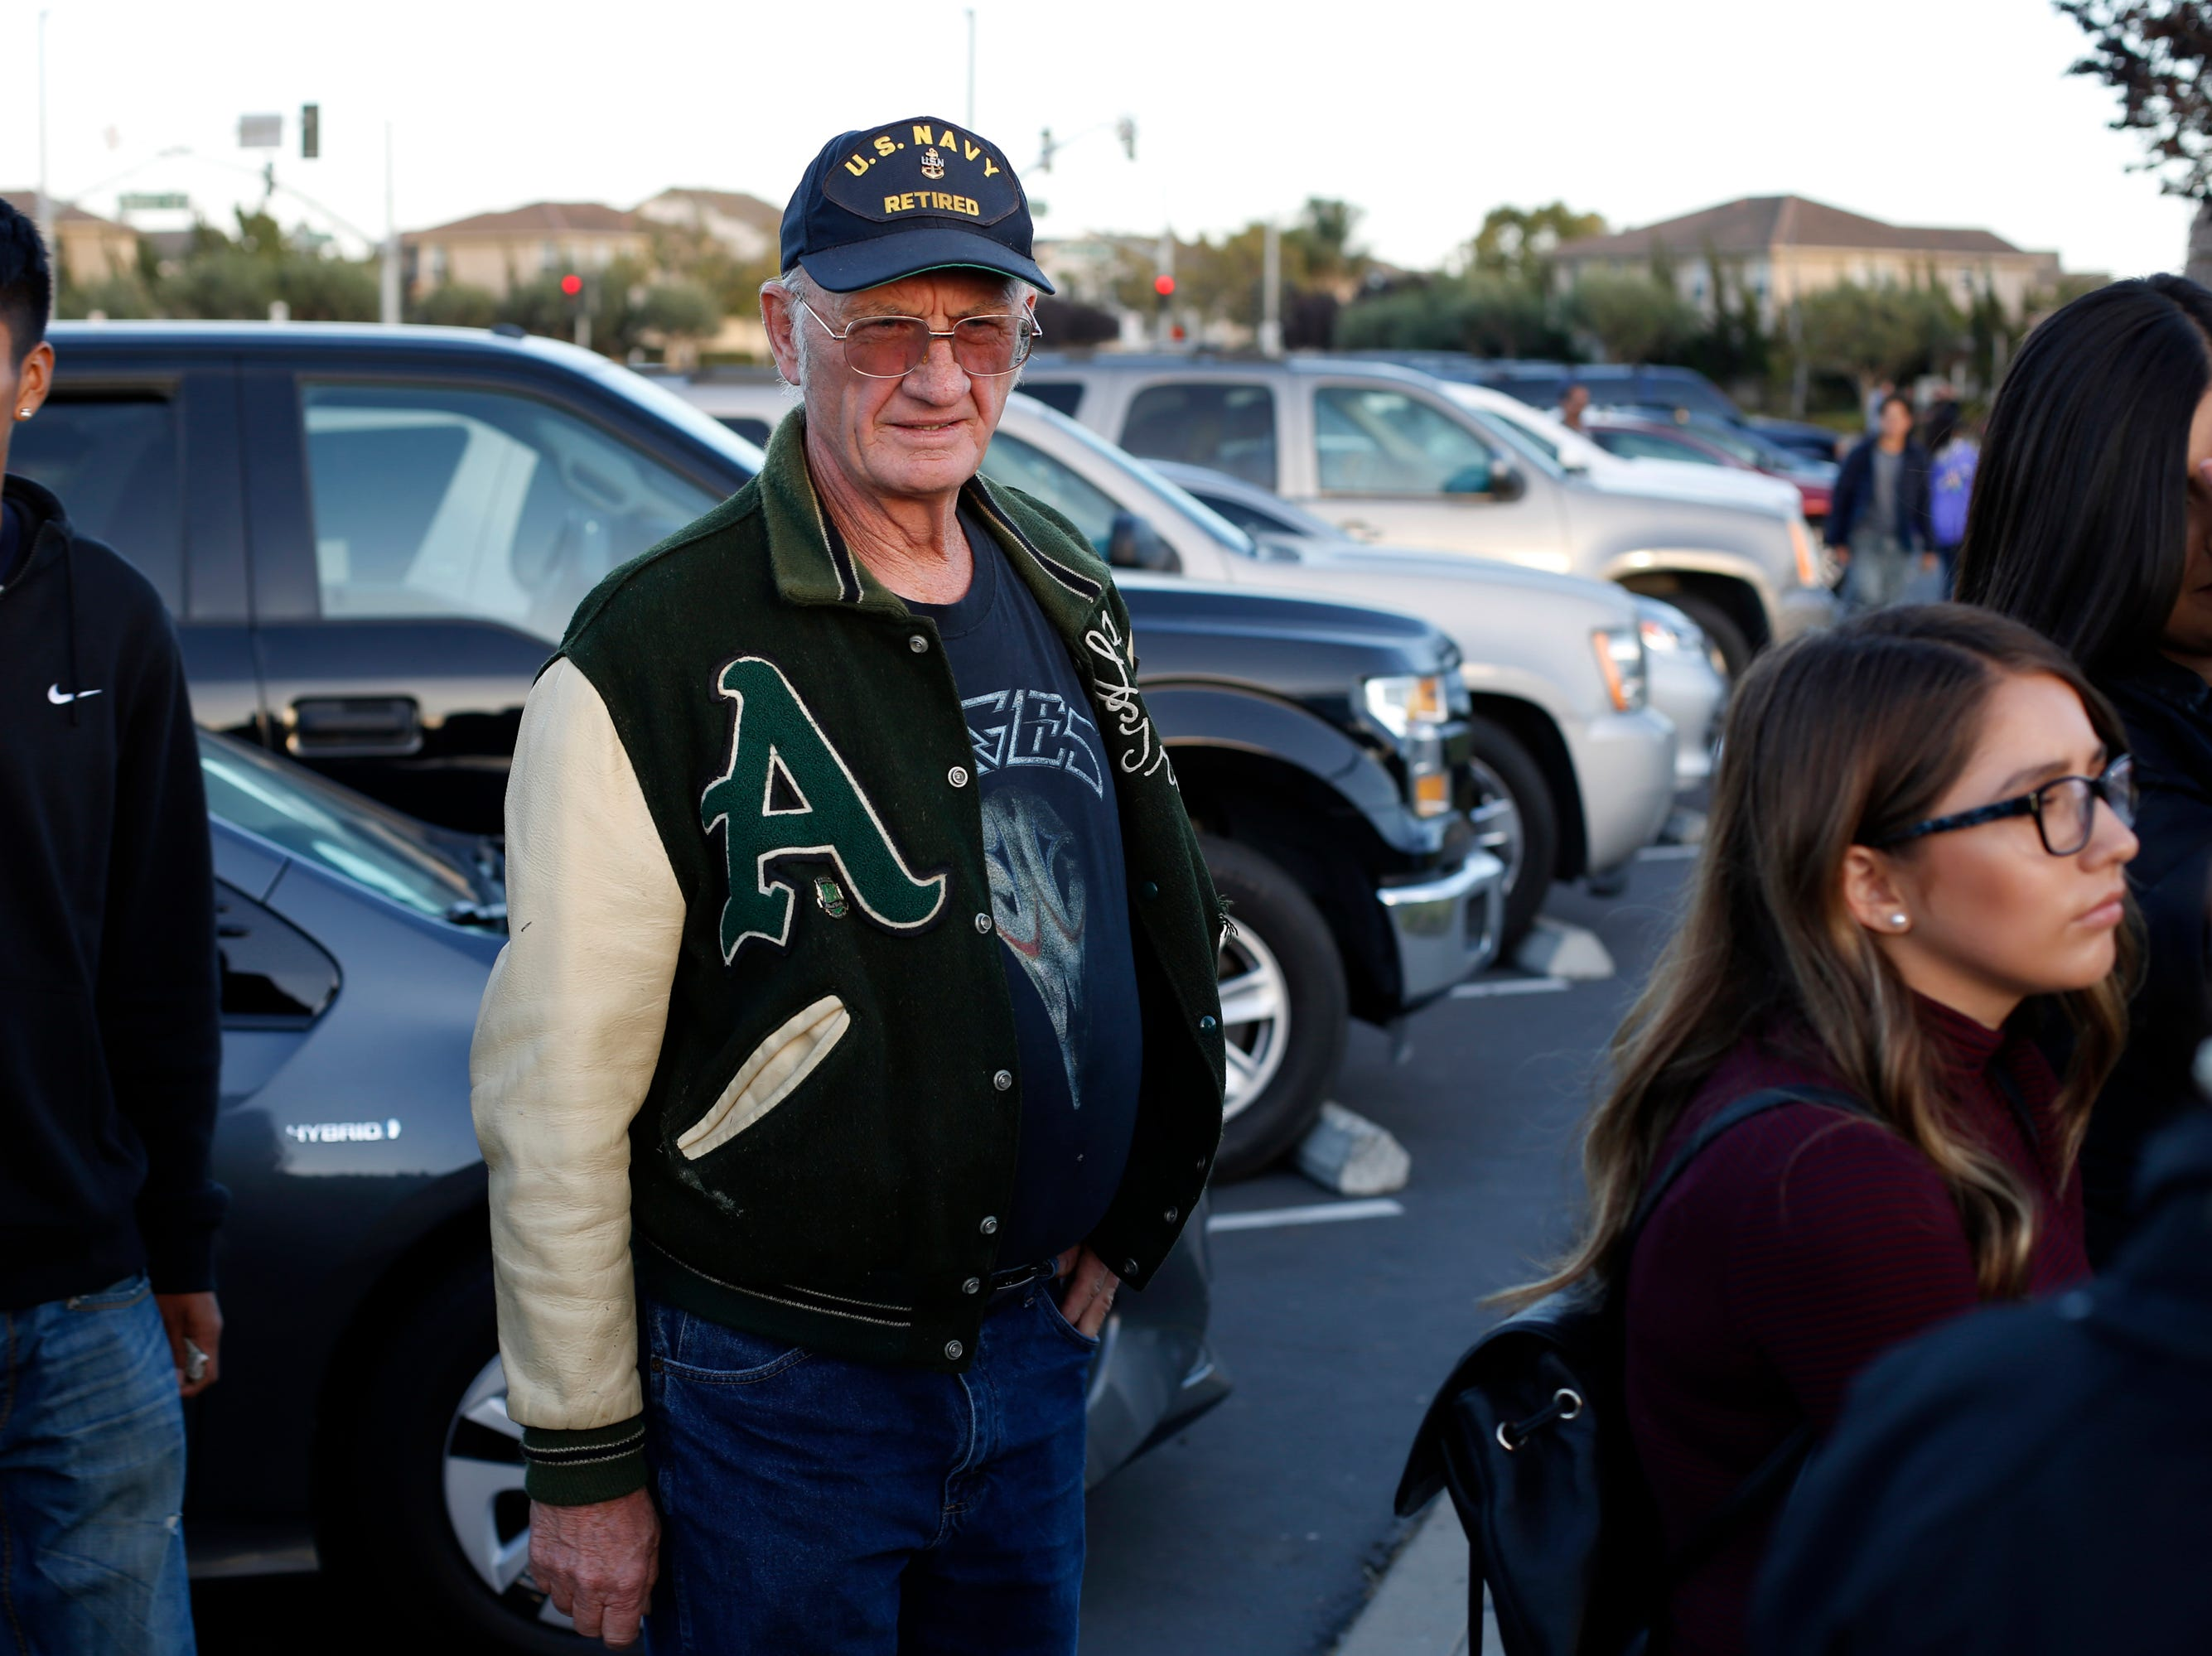 Alisal high class of 1971 alumni Mike Askew waits in line with students before football against Everett Alvarez at Alisal High School in Salinas on Friday August 31, 2018. (Photo By David Royal)